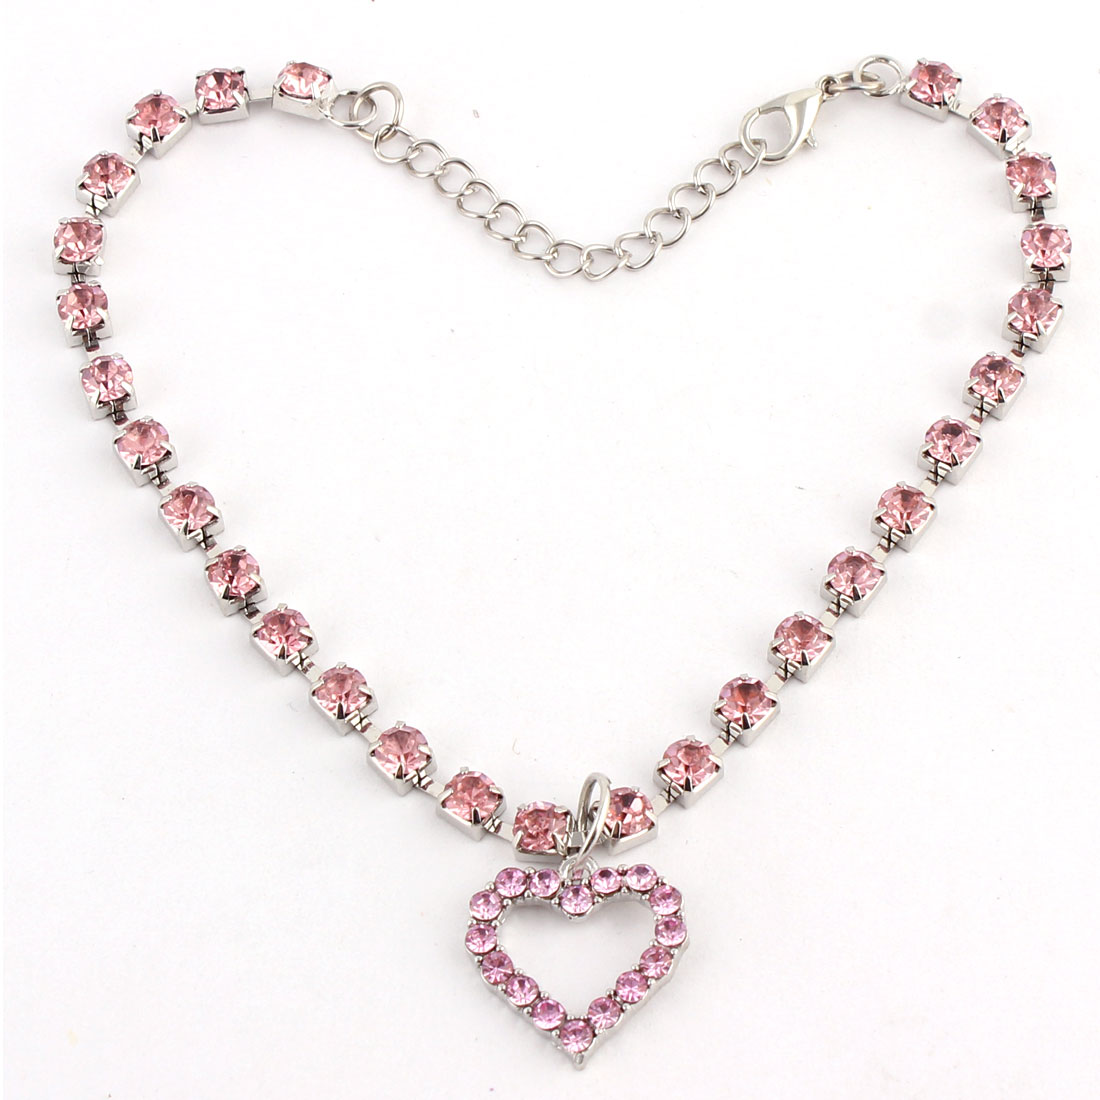 Dog Metal Beads Linked Rhinestone Inlaid Heart Shaped Pendant Necklace Pink